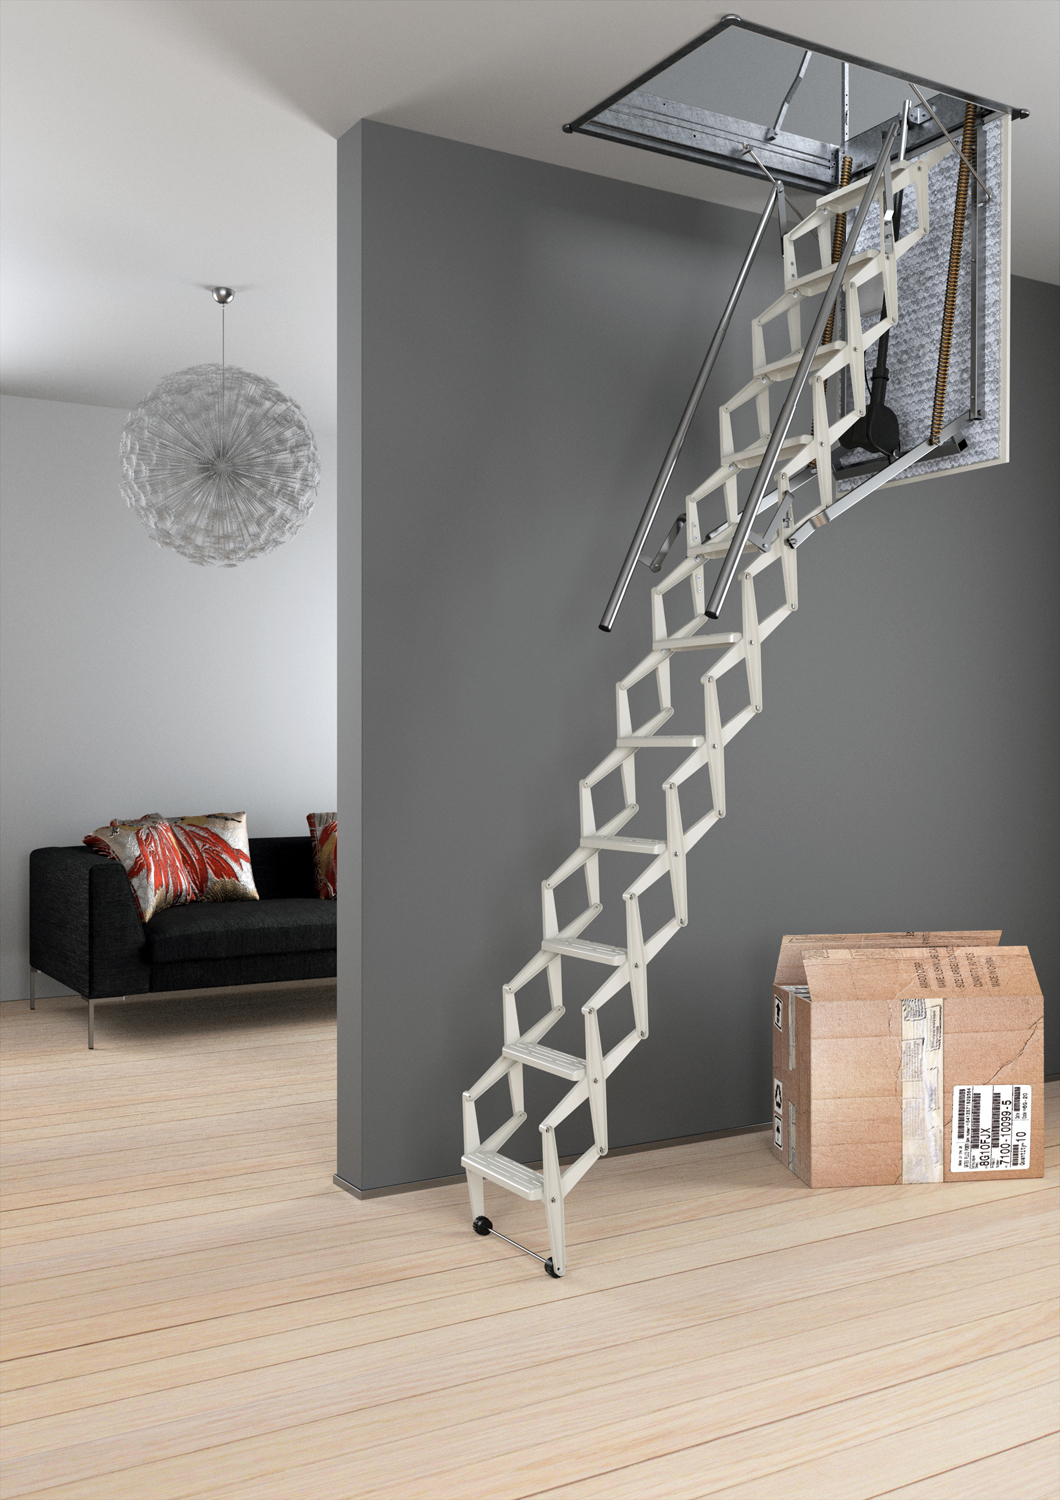 escalmatic-room-2-file068657